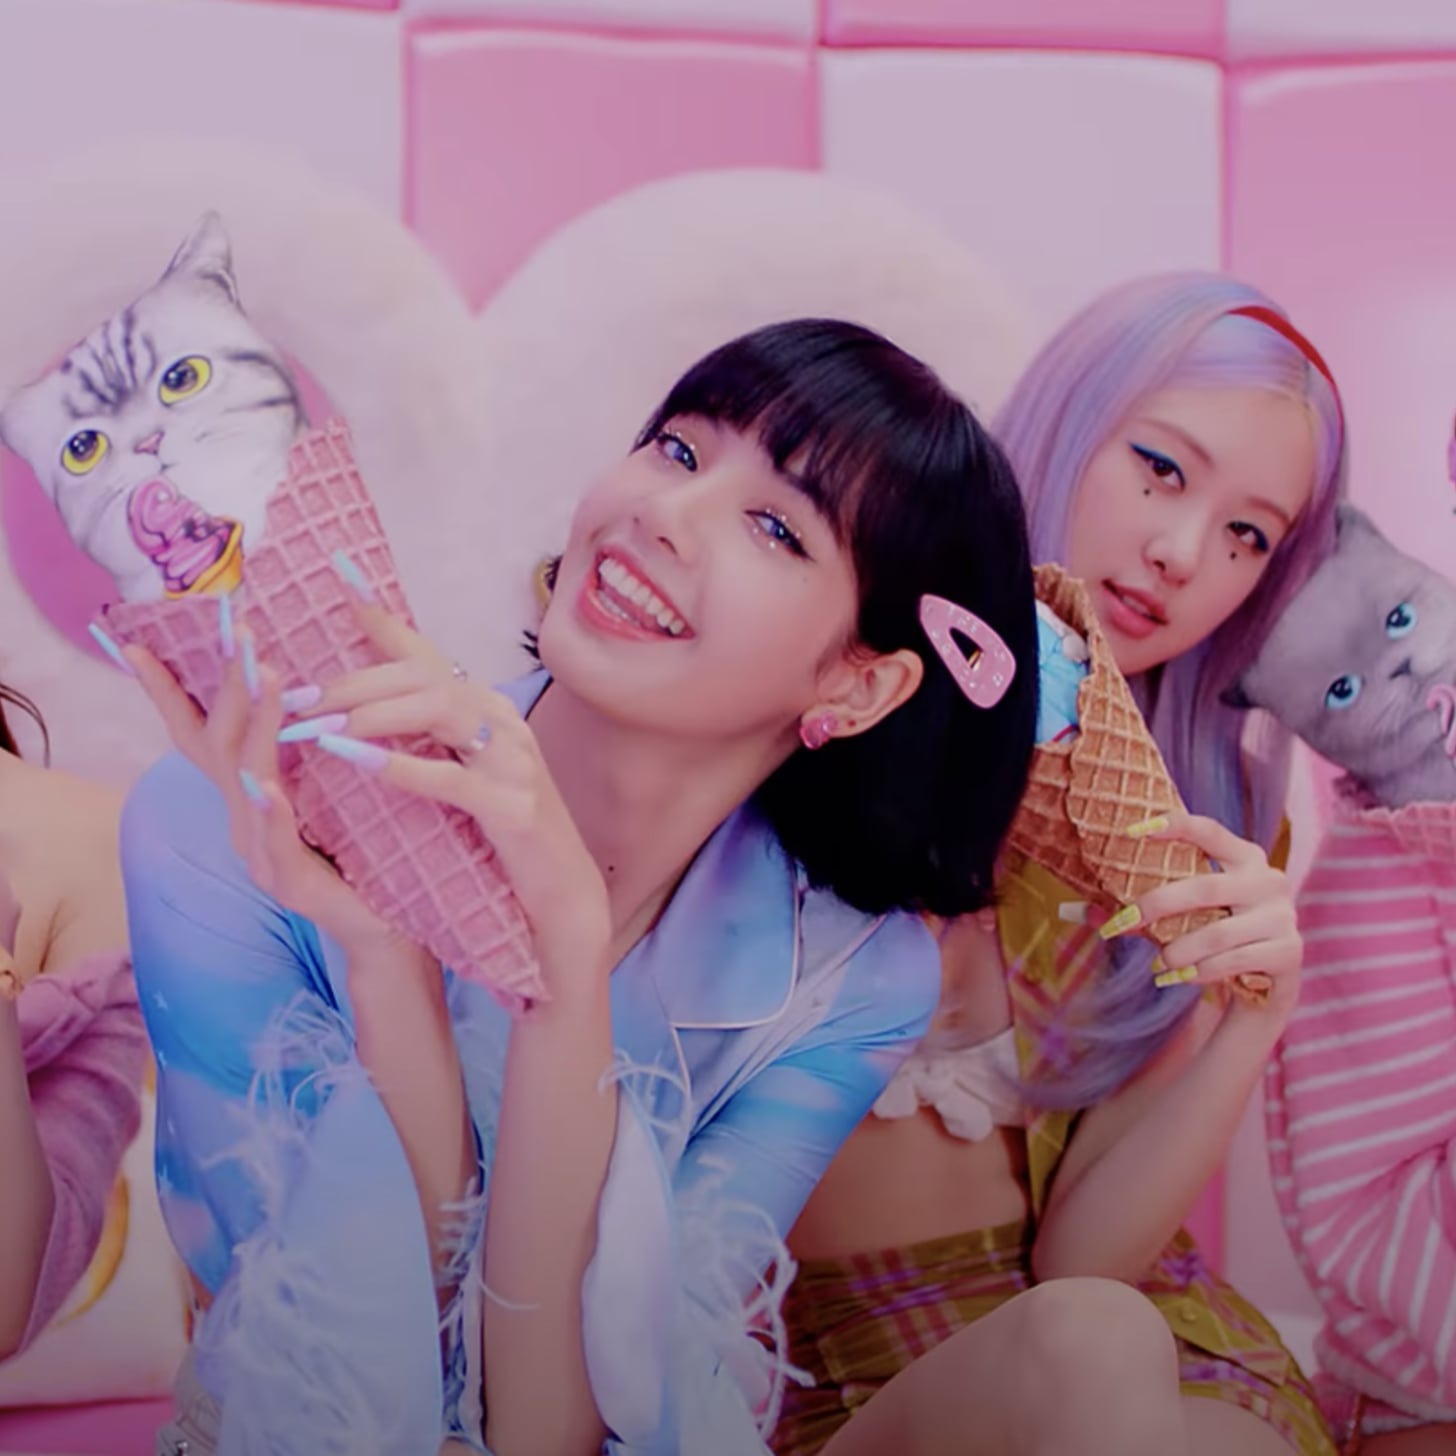 Blackpink And Selena Gomez S Ice Cream Video Beauty Looks Popsugar Beauty